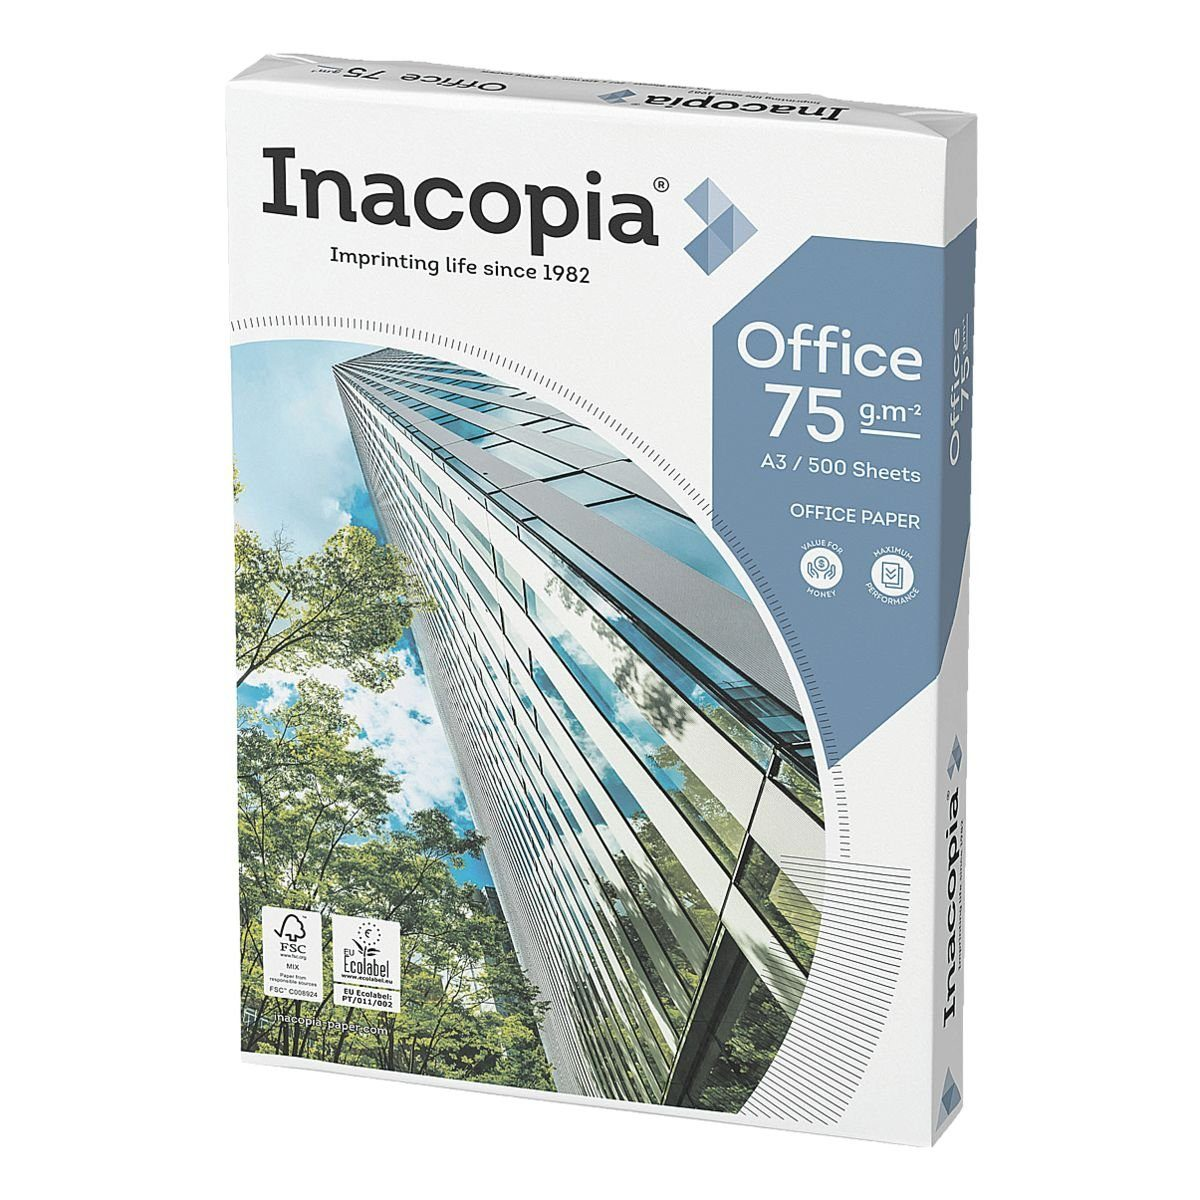 Inacopia Multifunktionales Druckerpapier »Office«